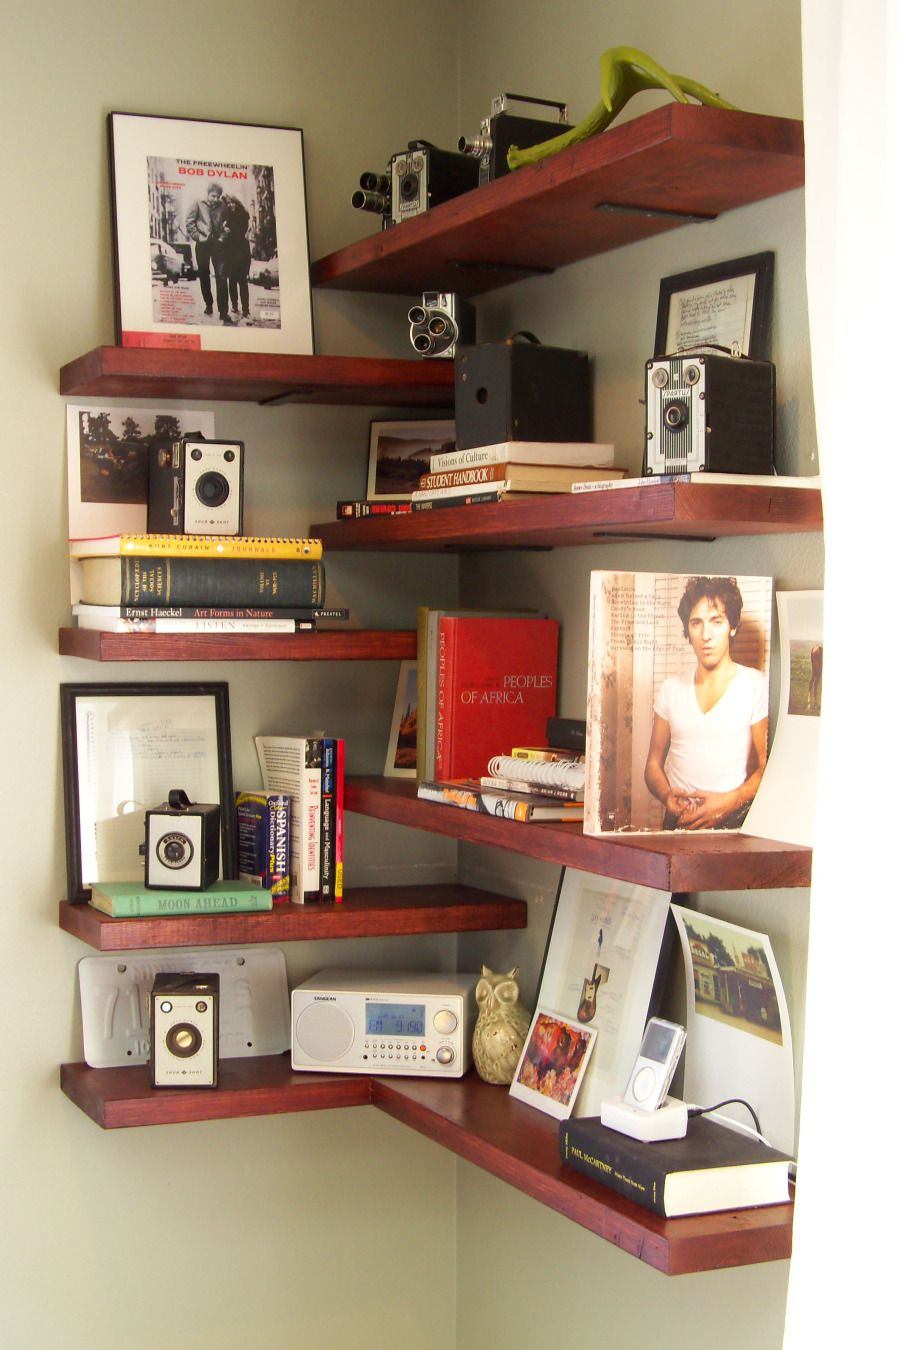 Eckregal Wohnzimmer Corner Shelves Home Renovation Pinterest Eckregal Eckregal